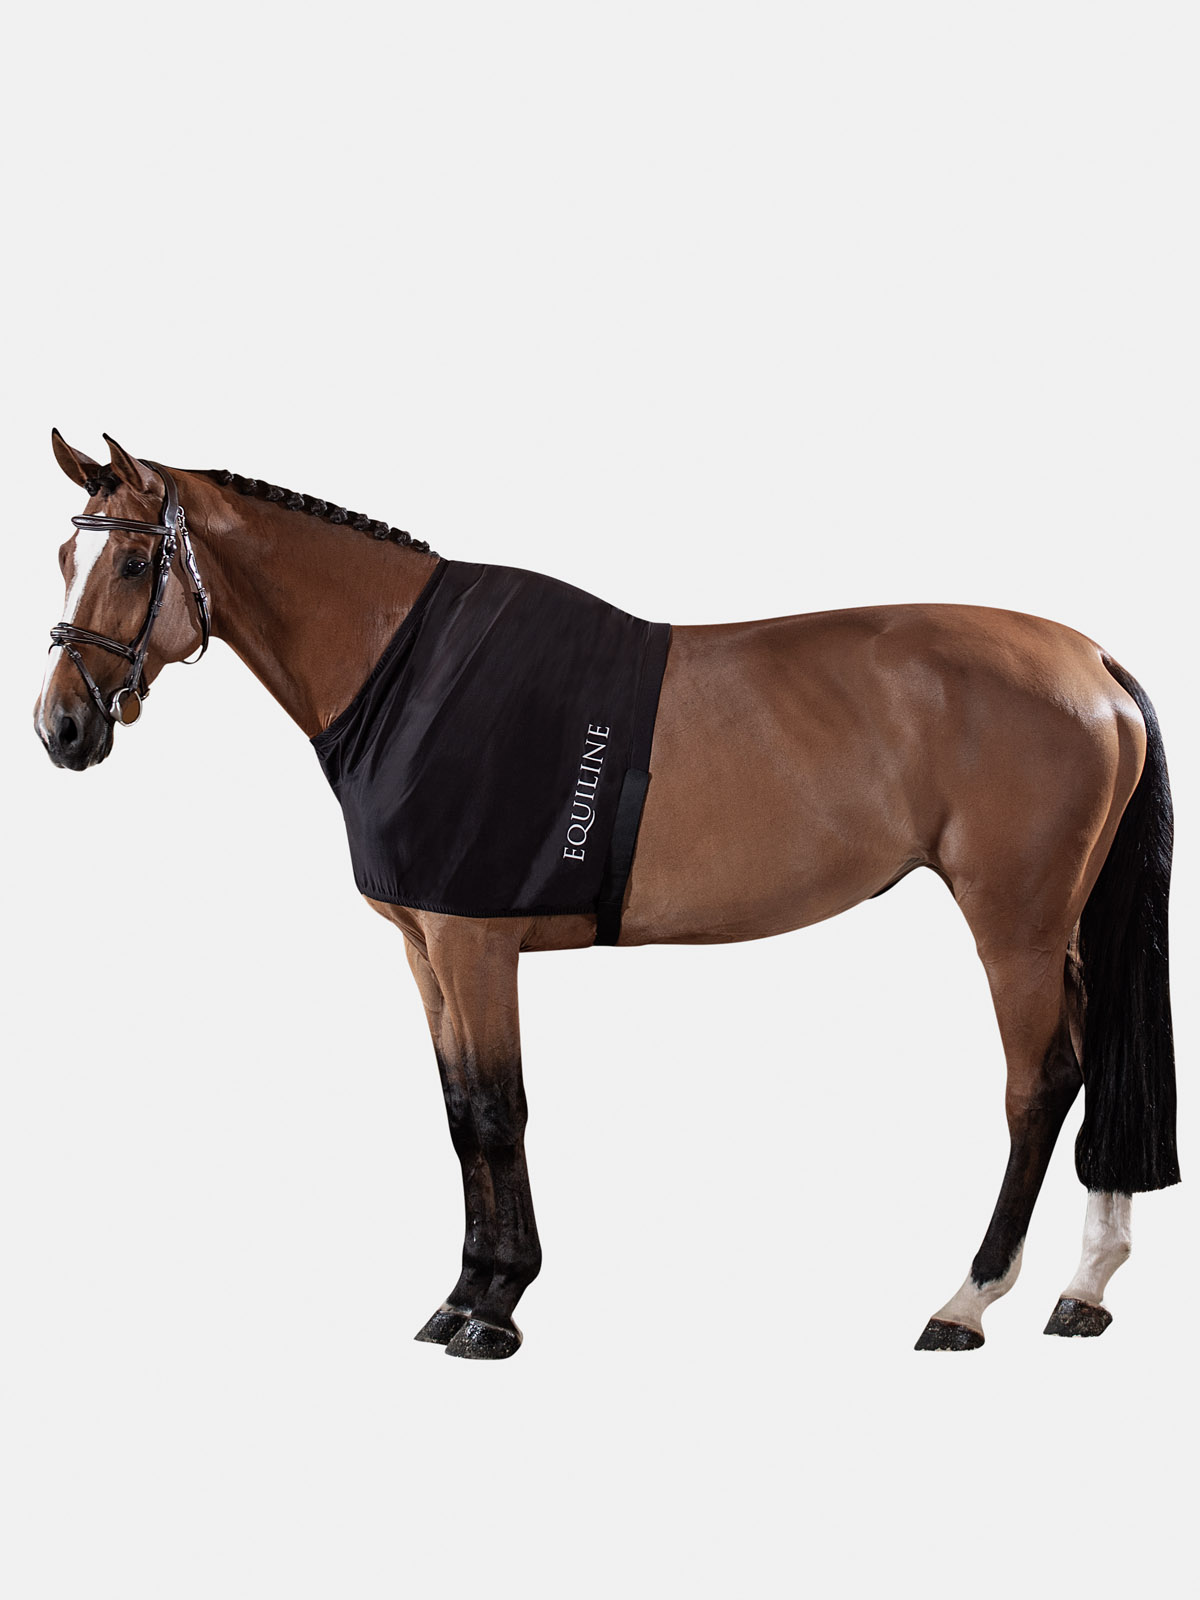 Equiline EDINBURGH horse shoulder guard